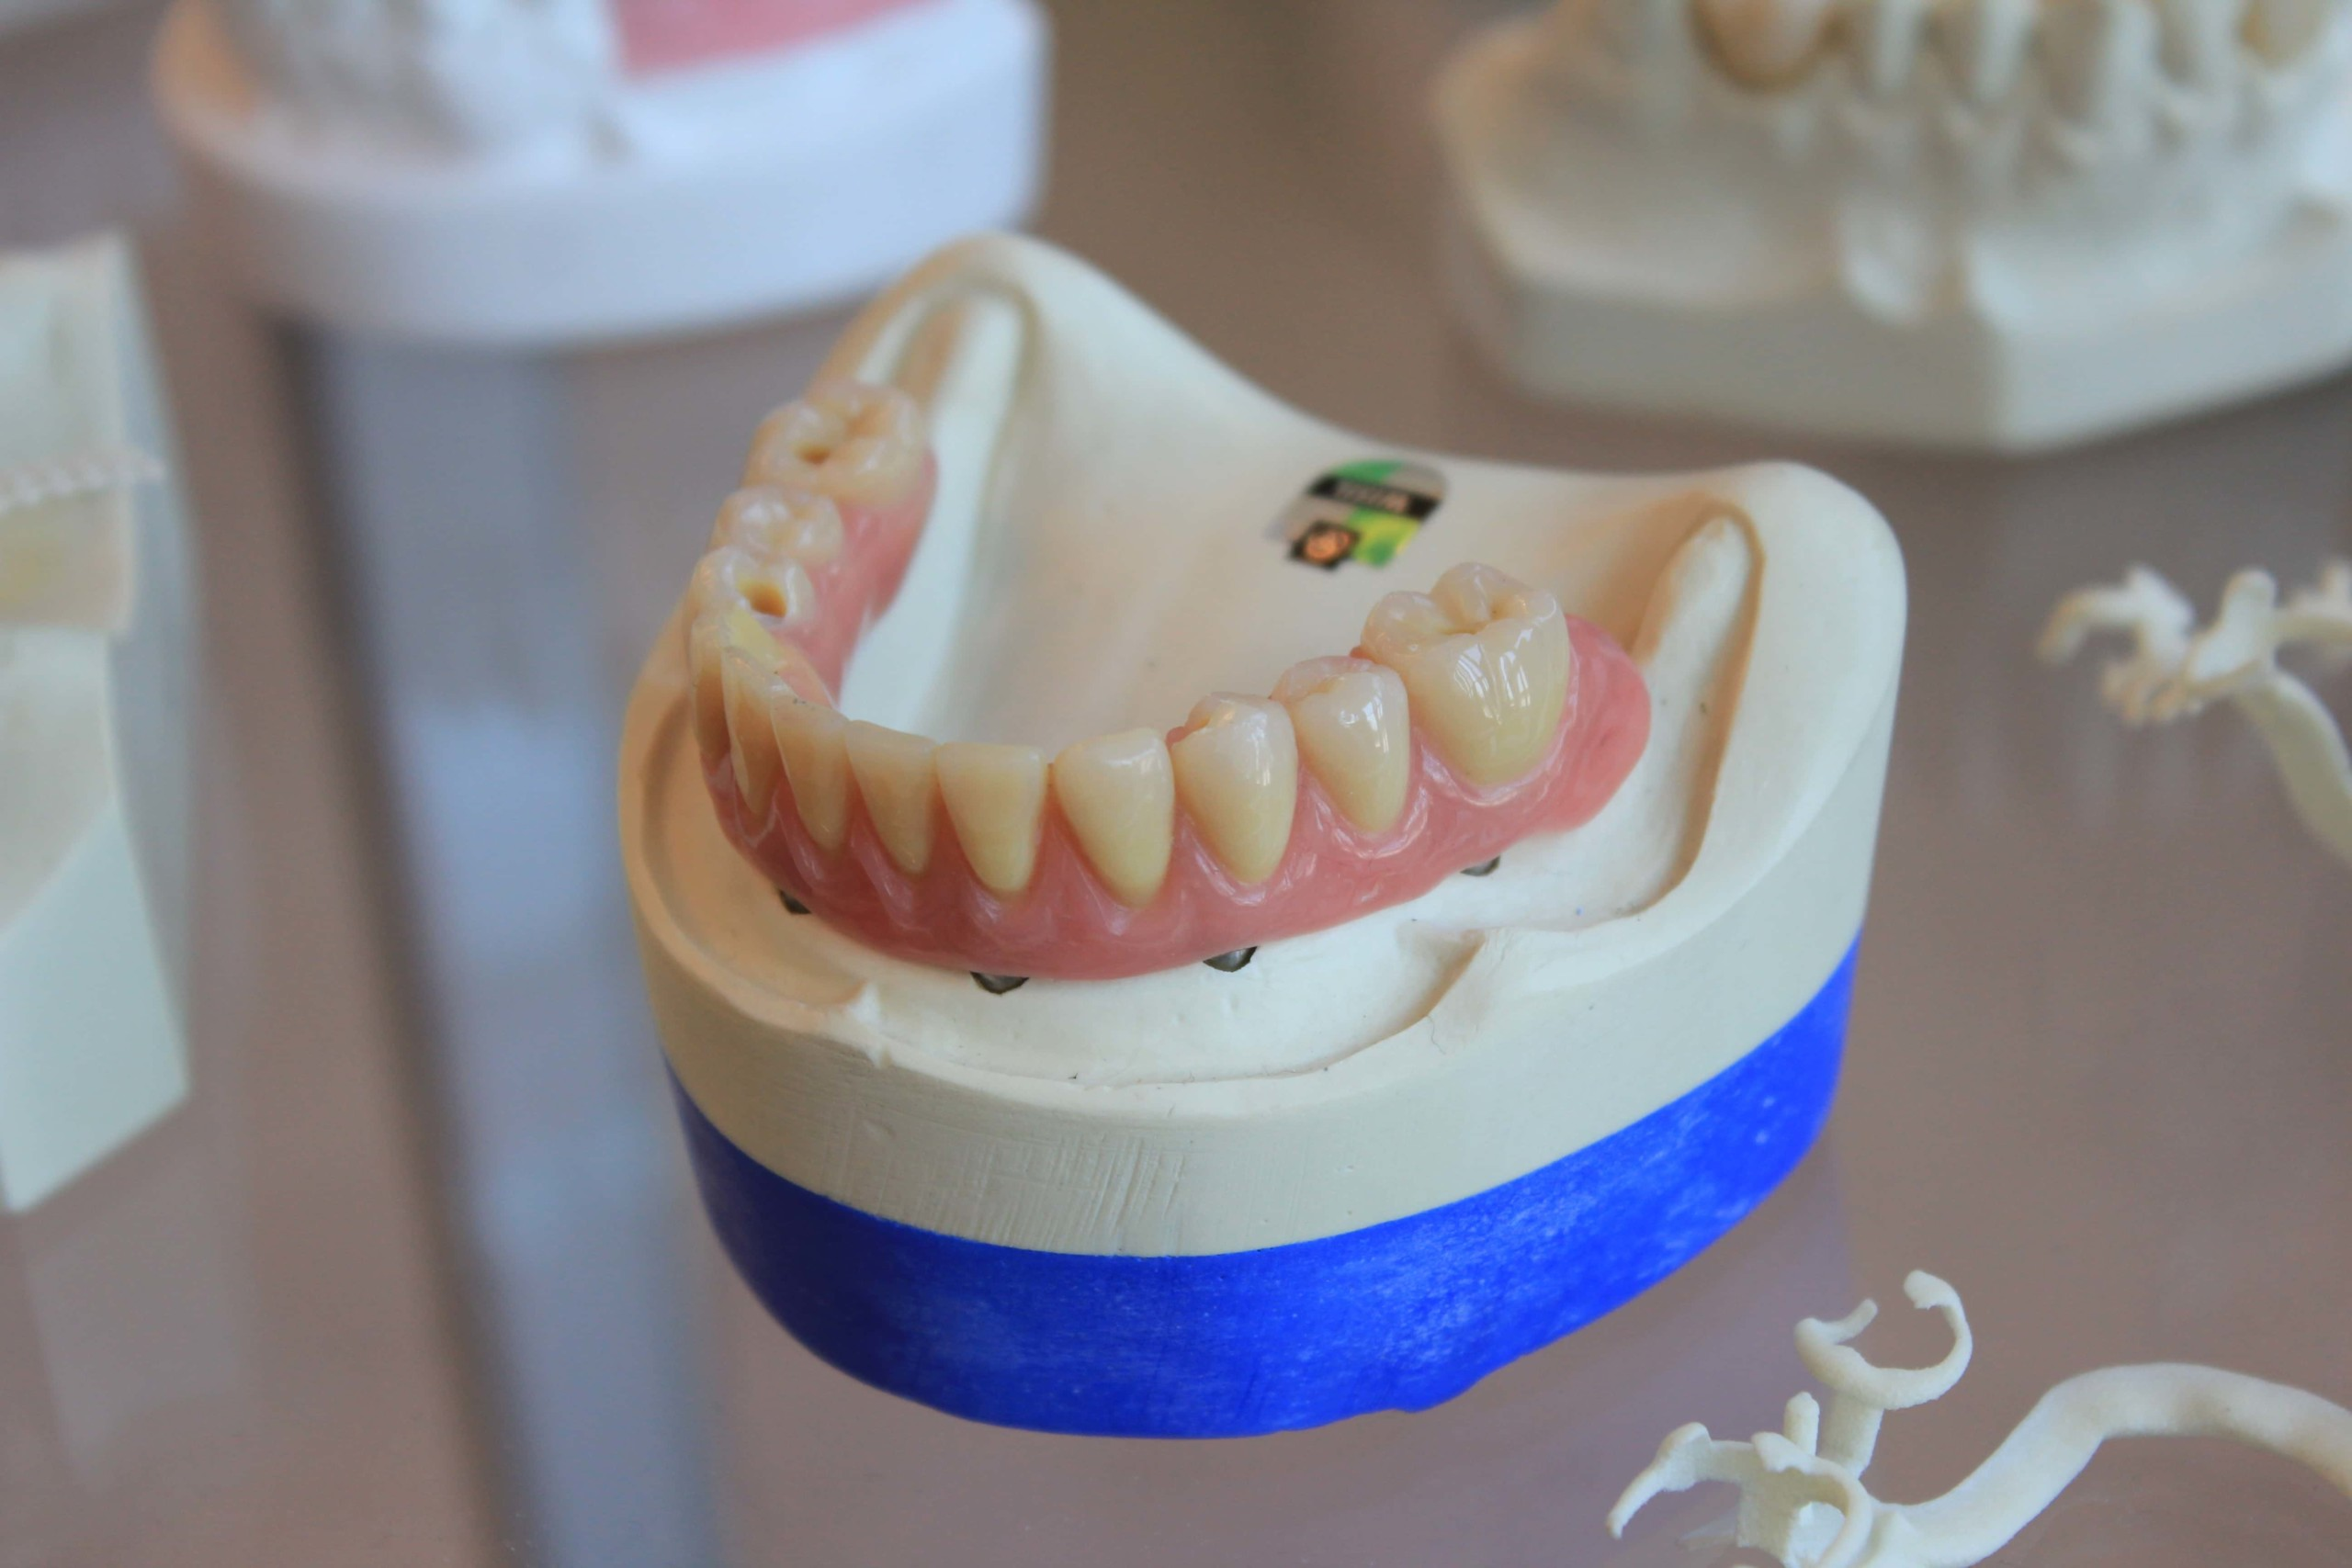 Adult Tooth Decay & Your Options